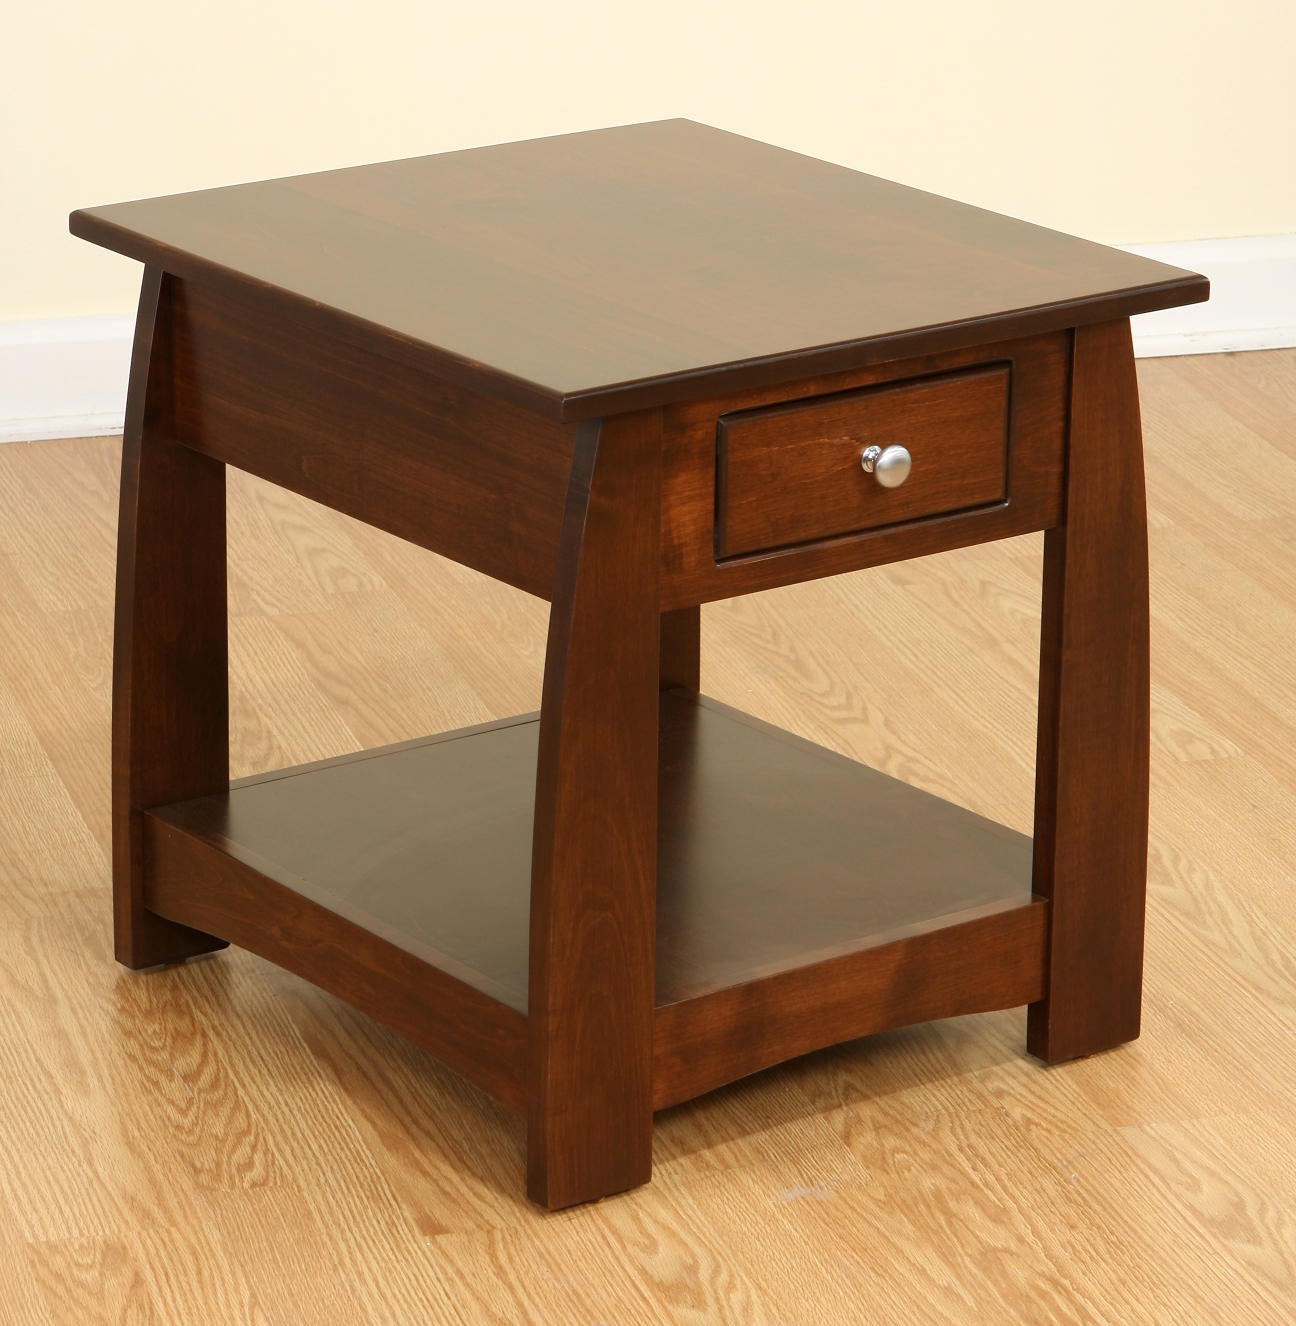 solid cherry end tables house design attractive color small table mosaic outdoor ethan allen chandeliers lodge furniture side vancouver contemporary living room coffee large round